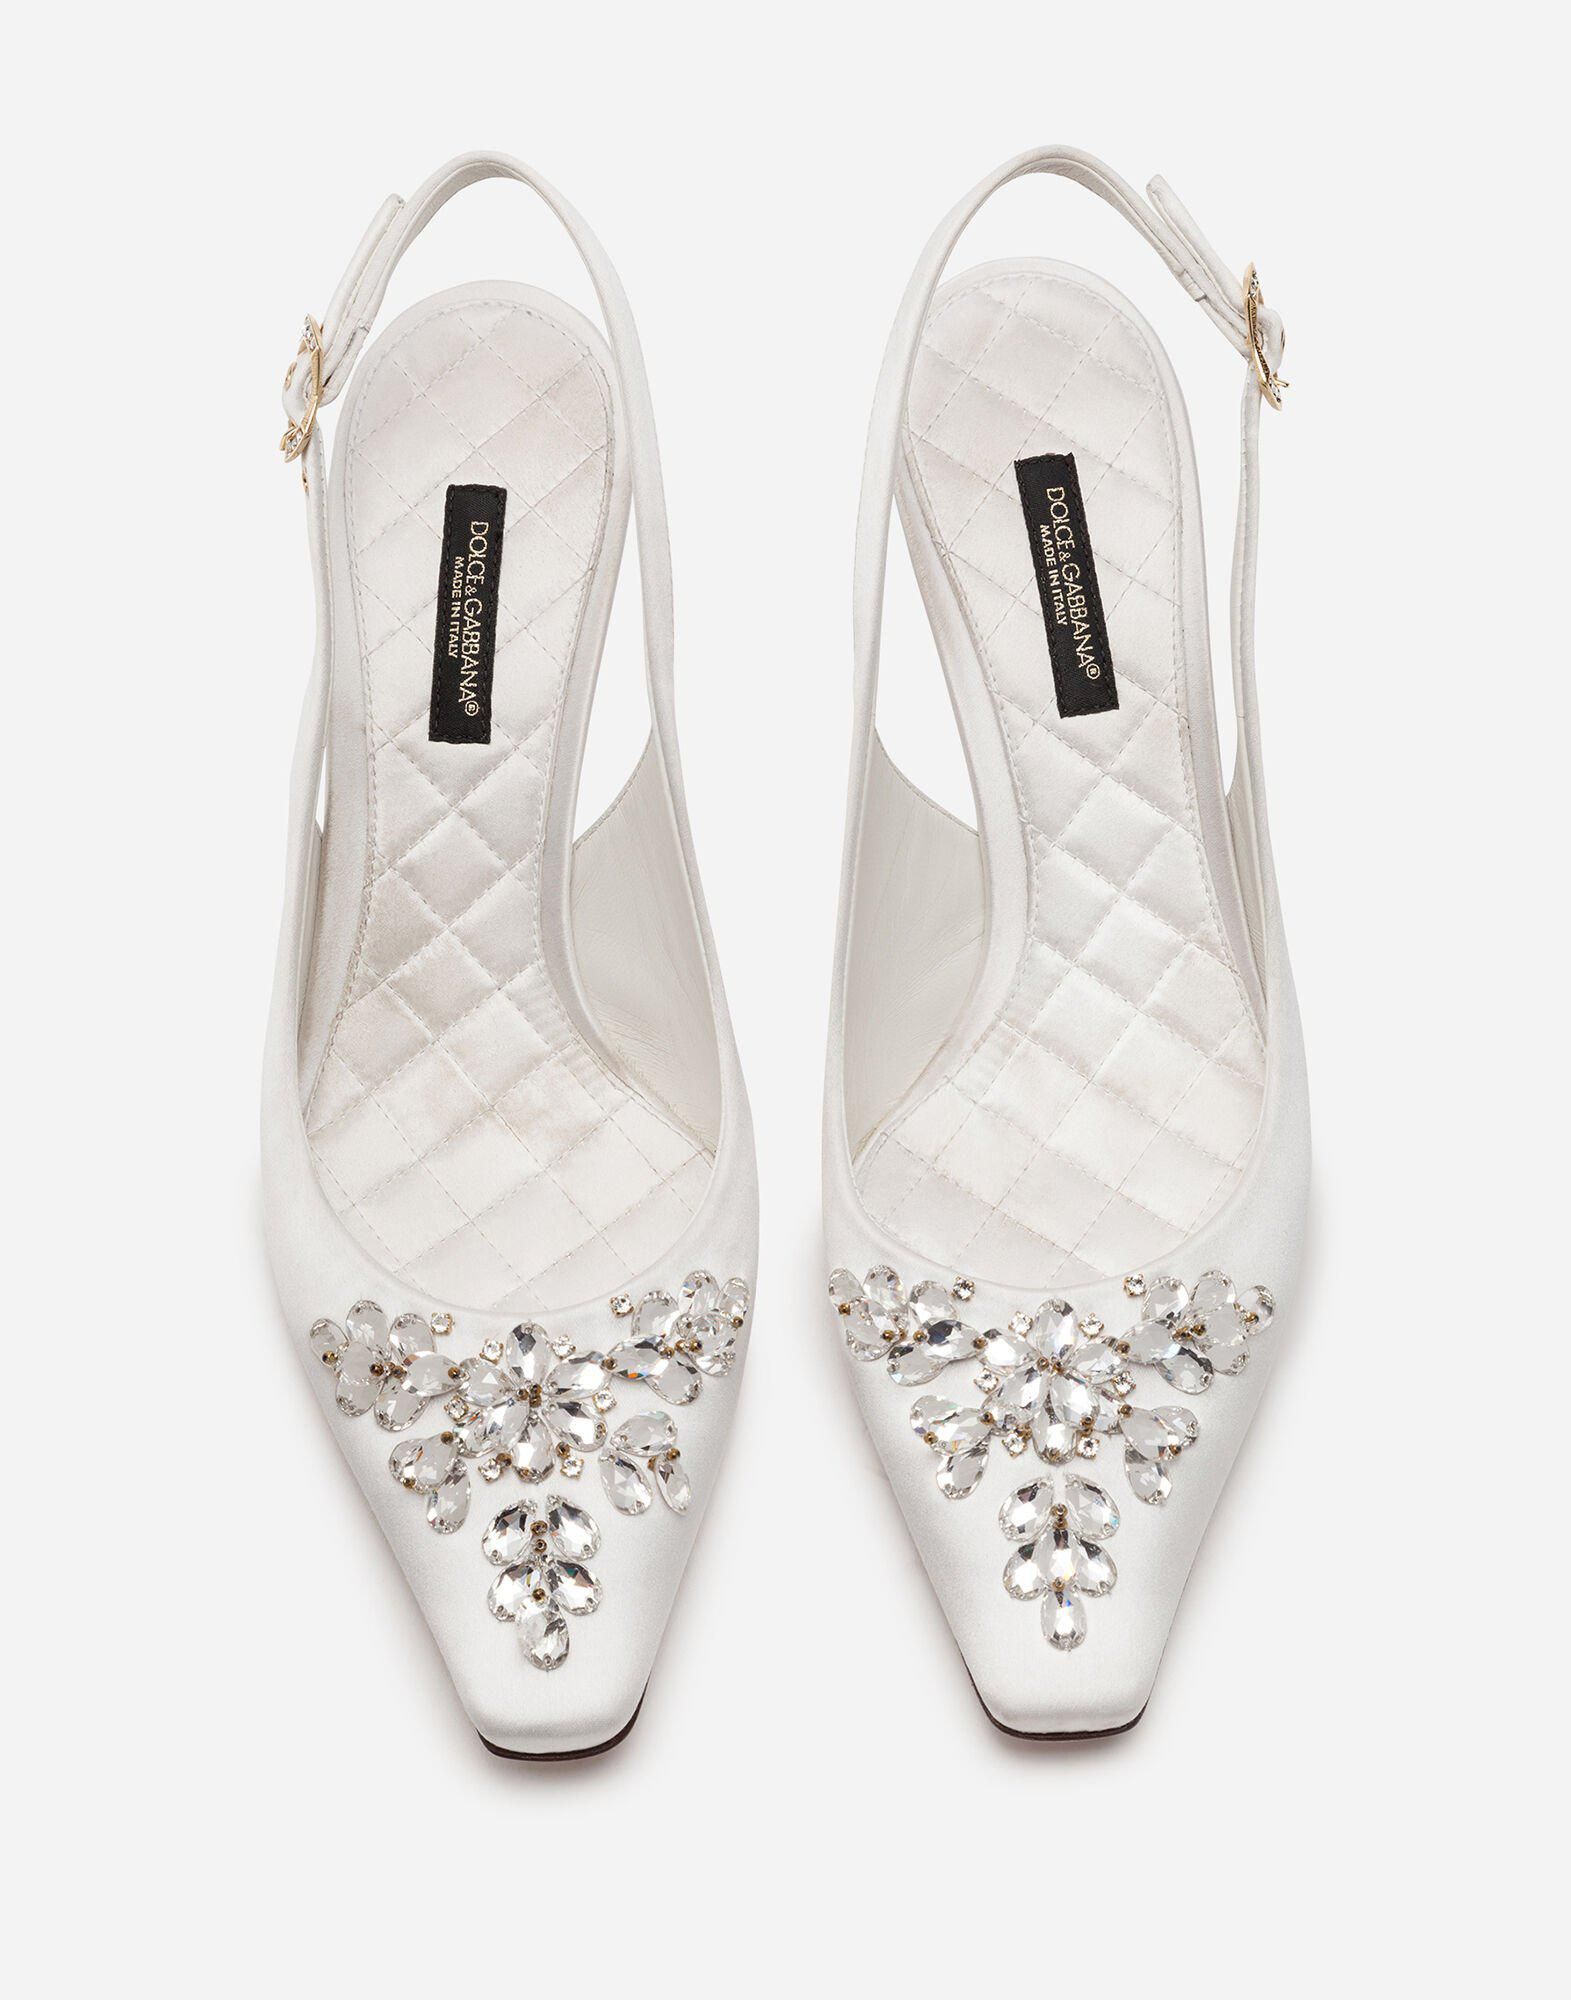 Satin sling back with bejeweled embroidery 3